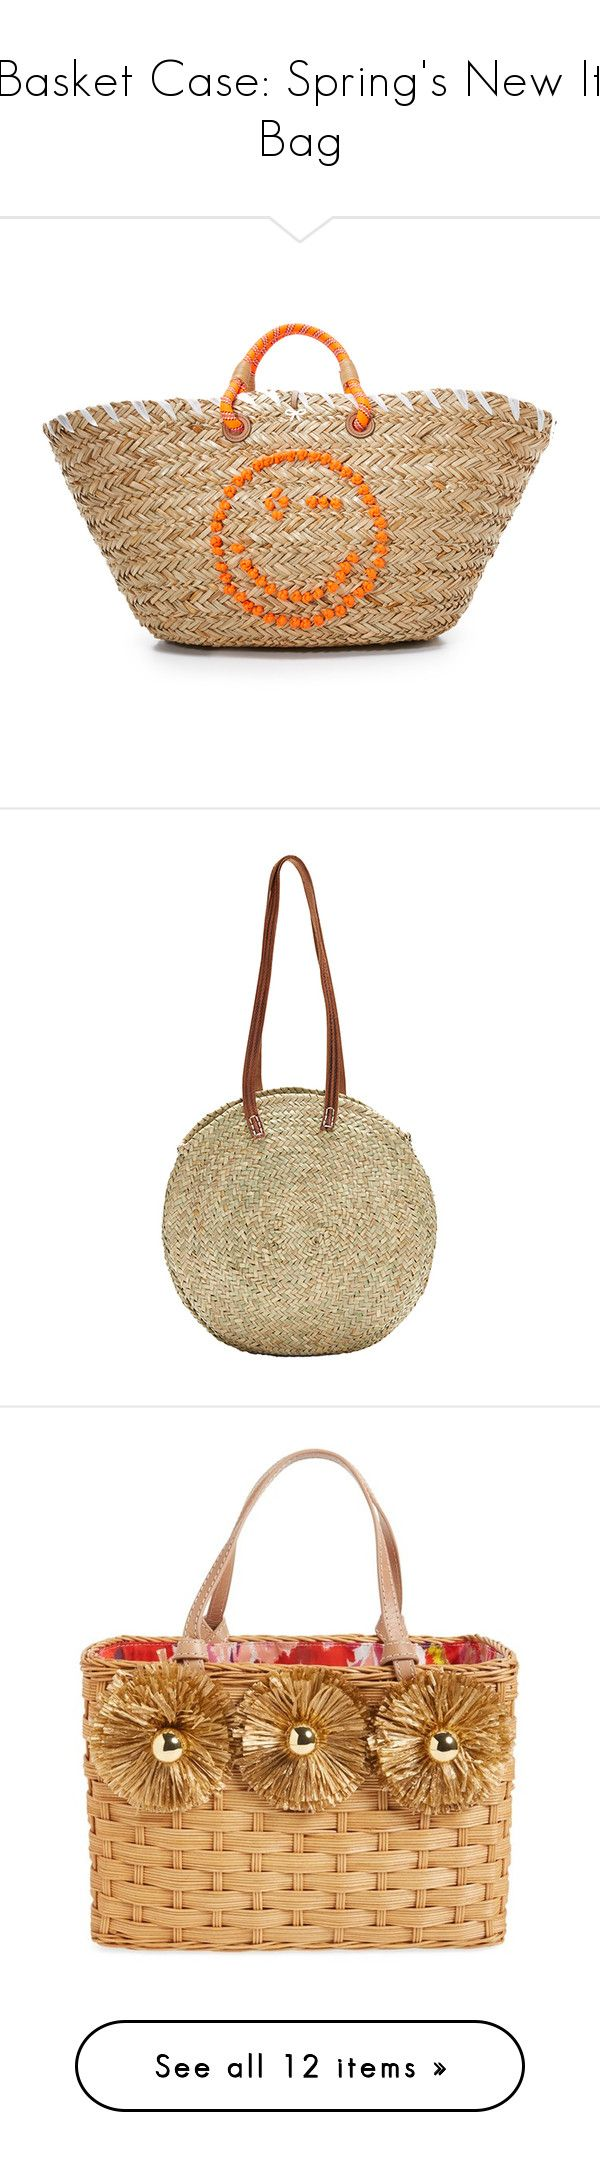 """Basket Case: Spring's New It Bag"" by polyvore-editorial ❤ liked on Polyvore featuring basketbags, bags, handbags, tote bags, natural, woven tote, tote handbags, anya hindmarch tote, woven purse and beige tote"